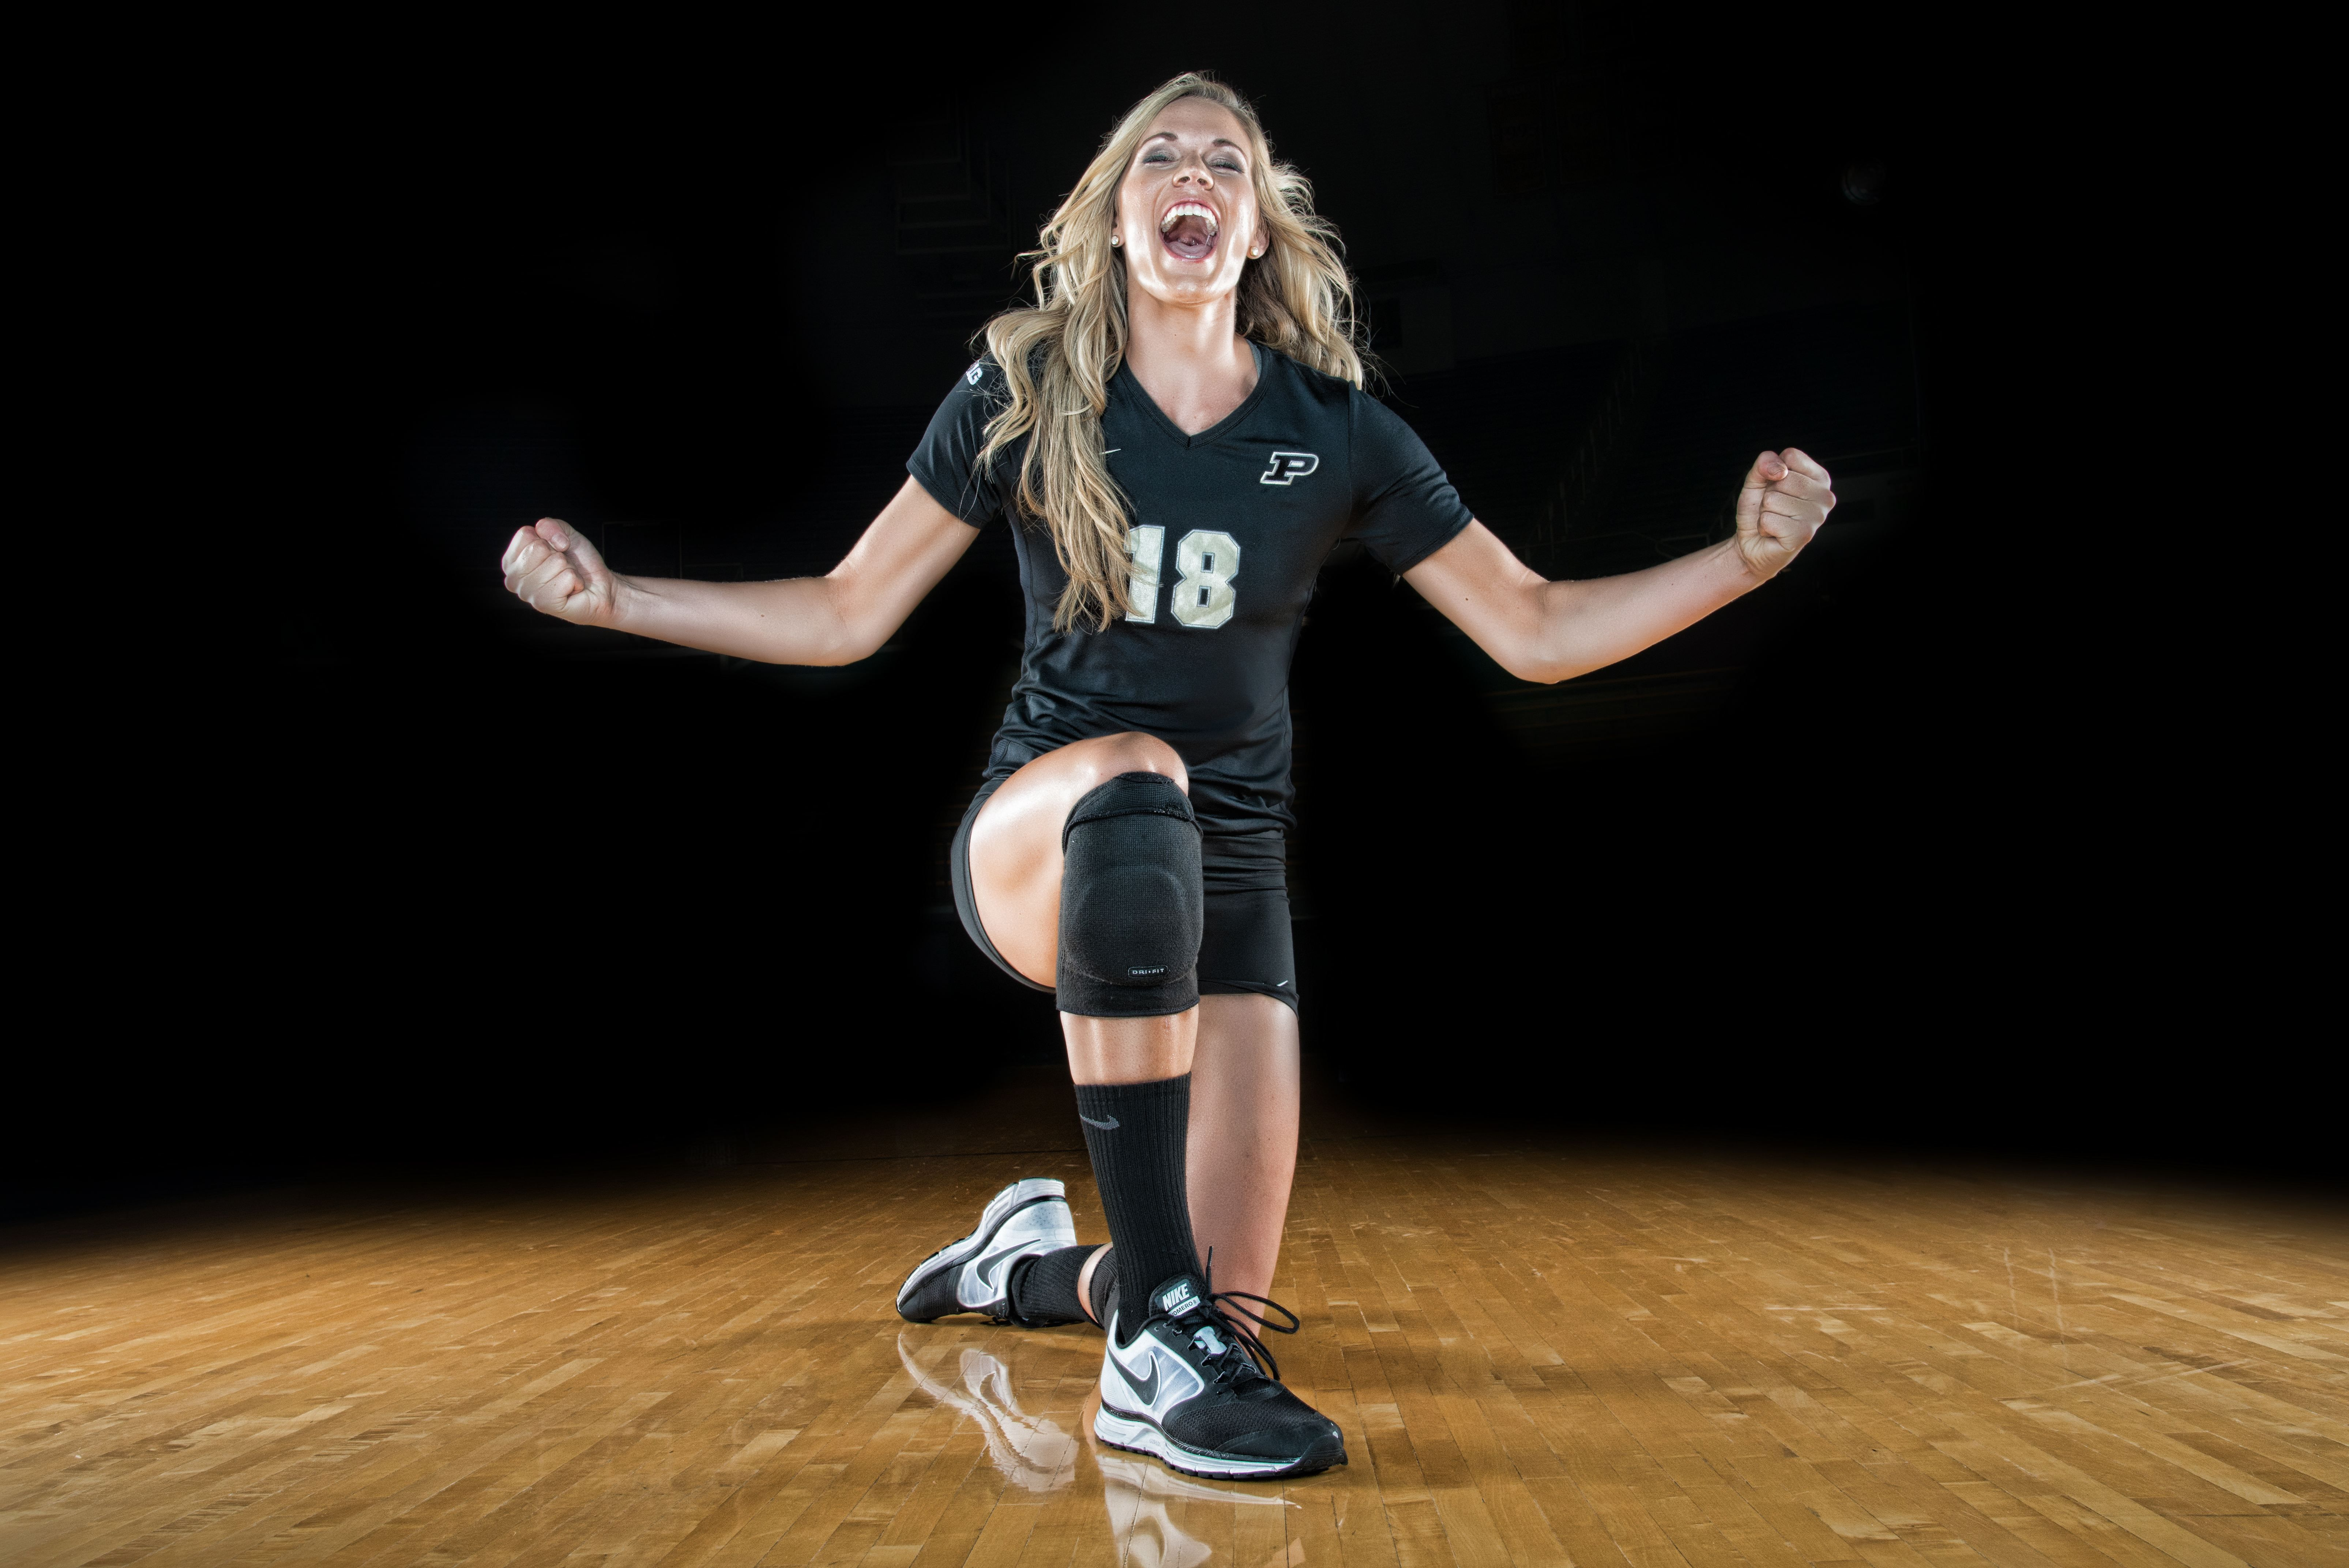 Purdue Athletics Volleyball Photo Shoot Behind The Scenes On Exposure Volleyball Photos Volleyball Photography Volleyball Team Pictures